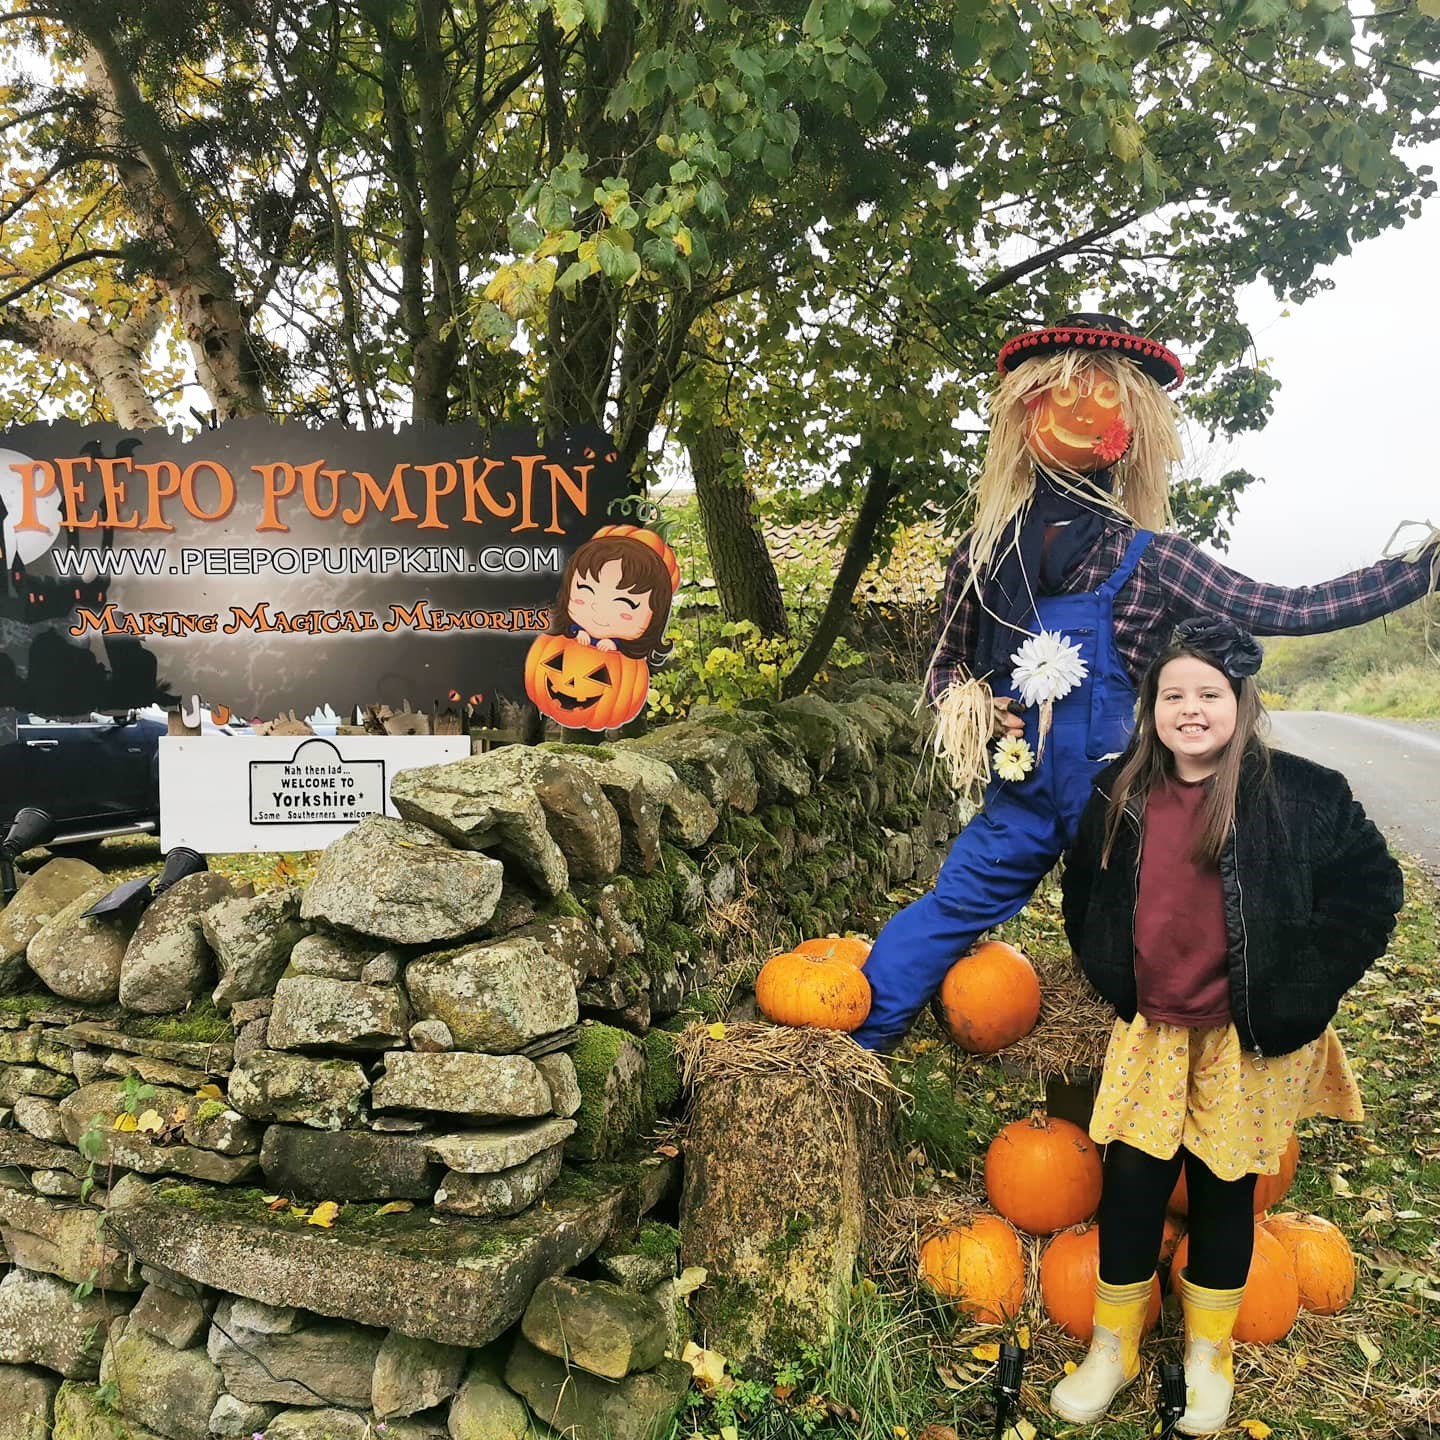 Pumpkin Picking at Peepo Pumpkin's Patch